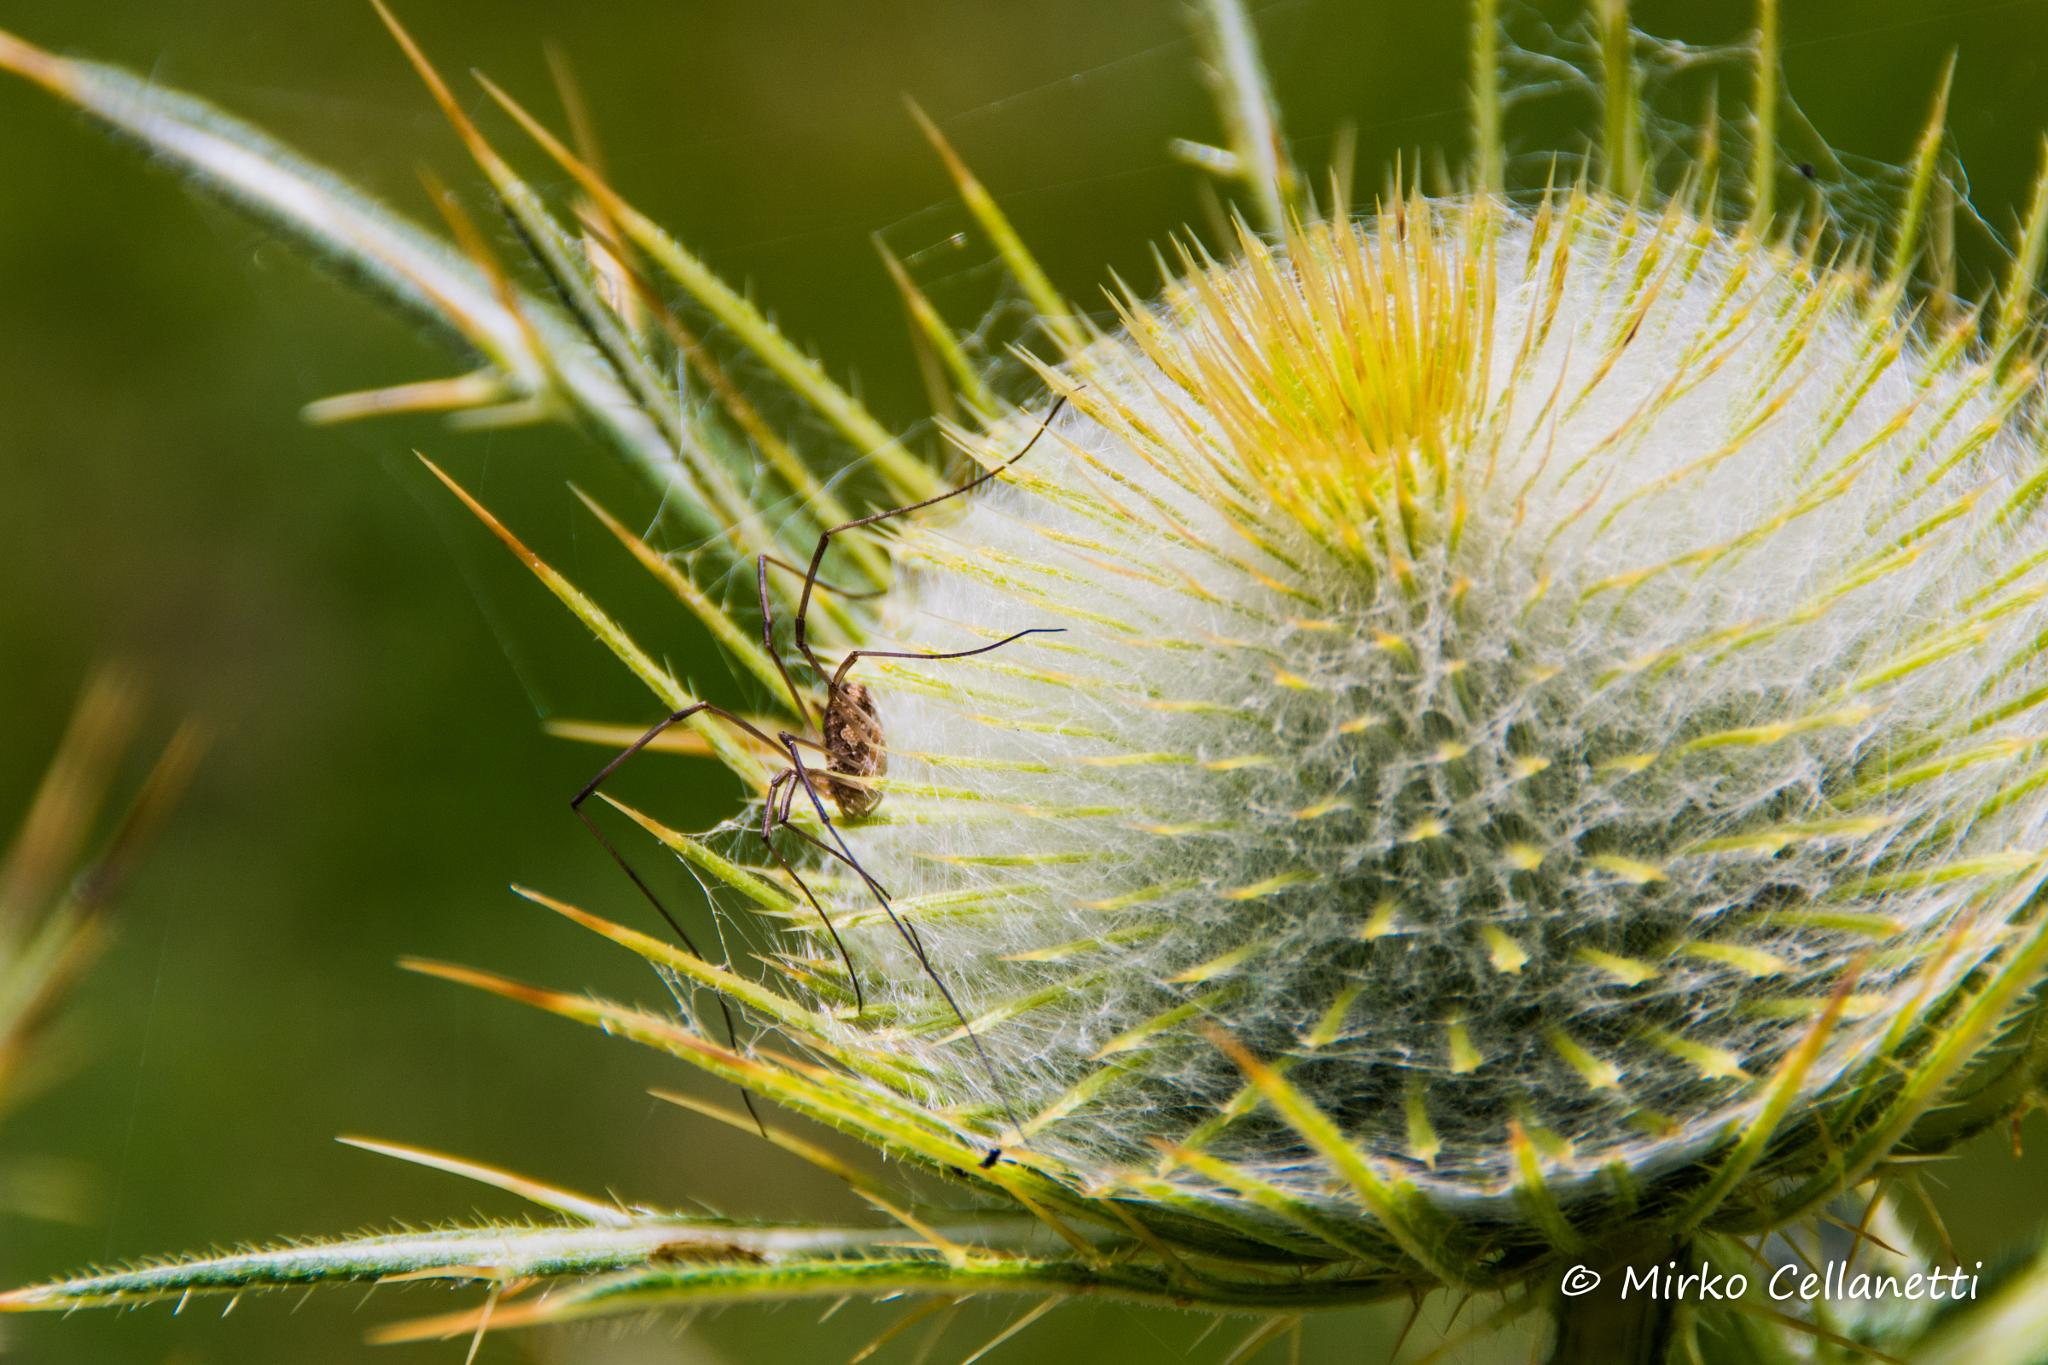 The spider on the flower by Mirko Cellanetti